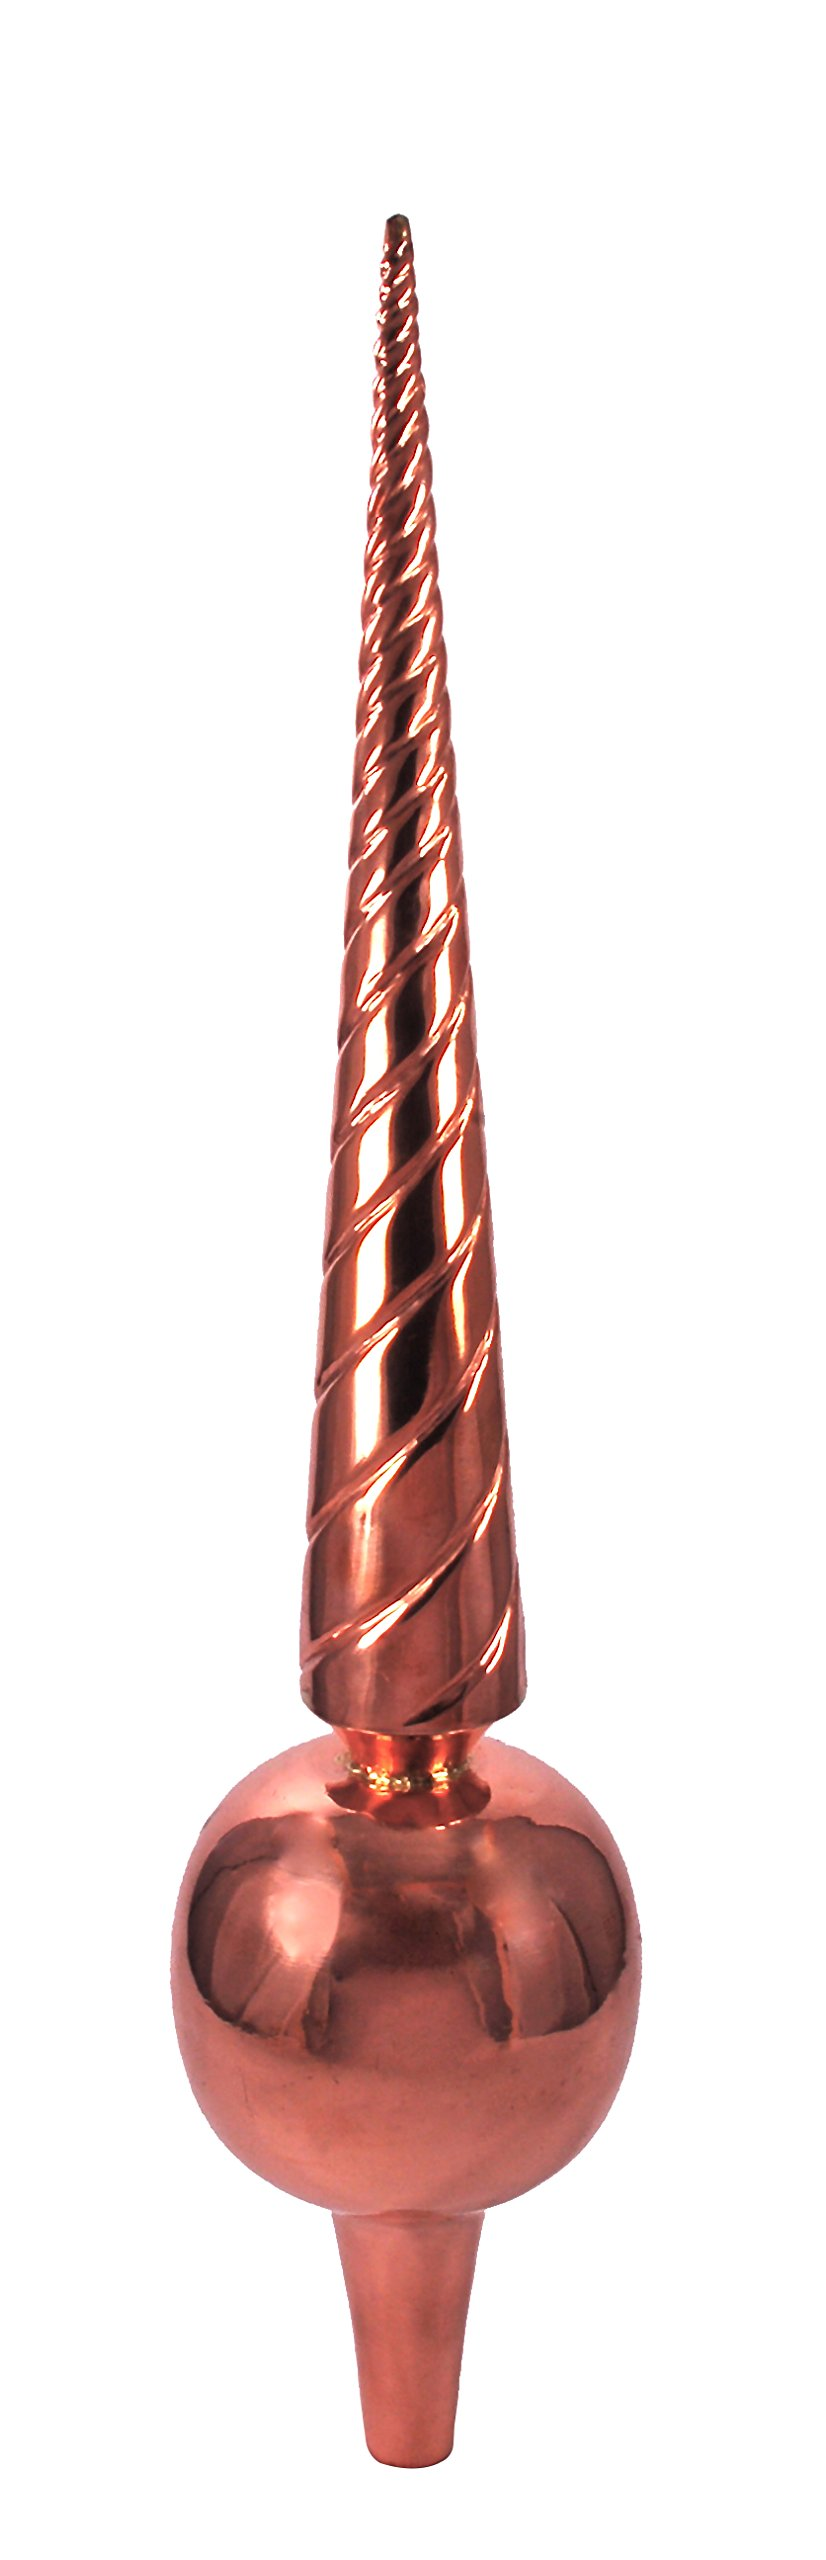 Dalvento Small Venetian Finial- Copper